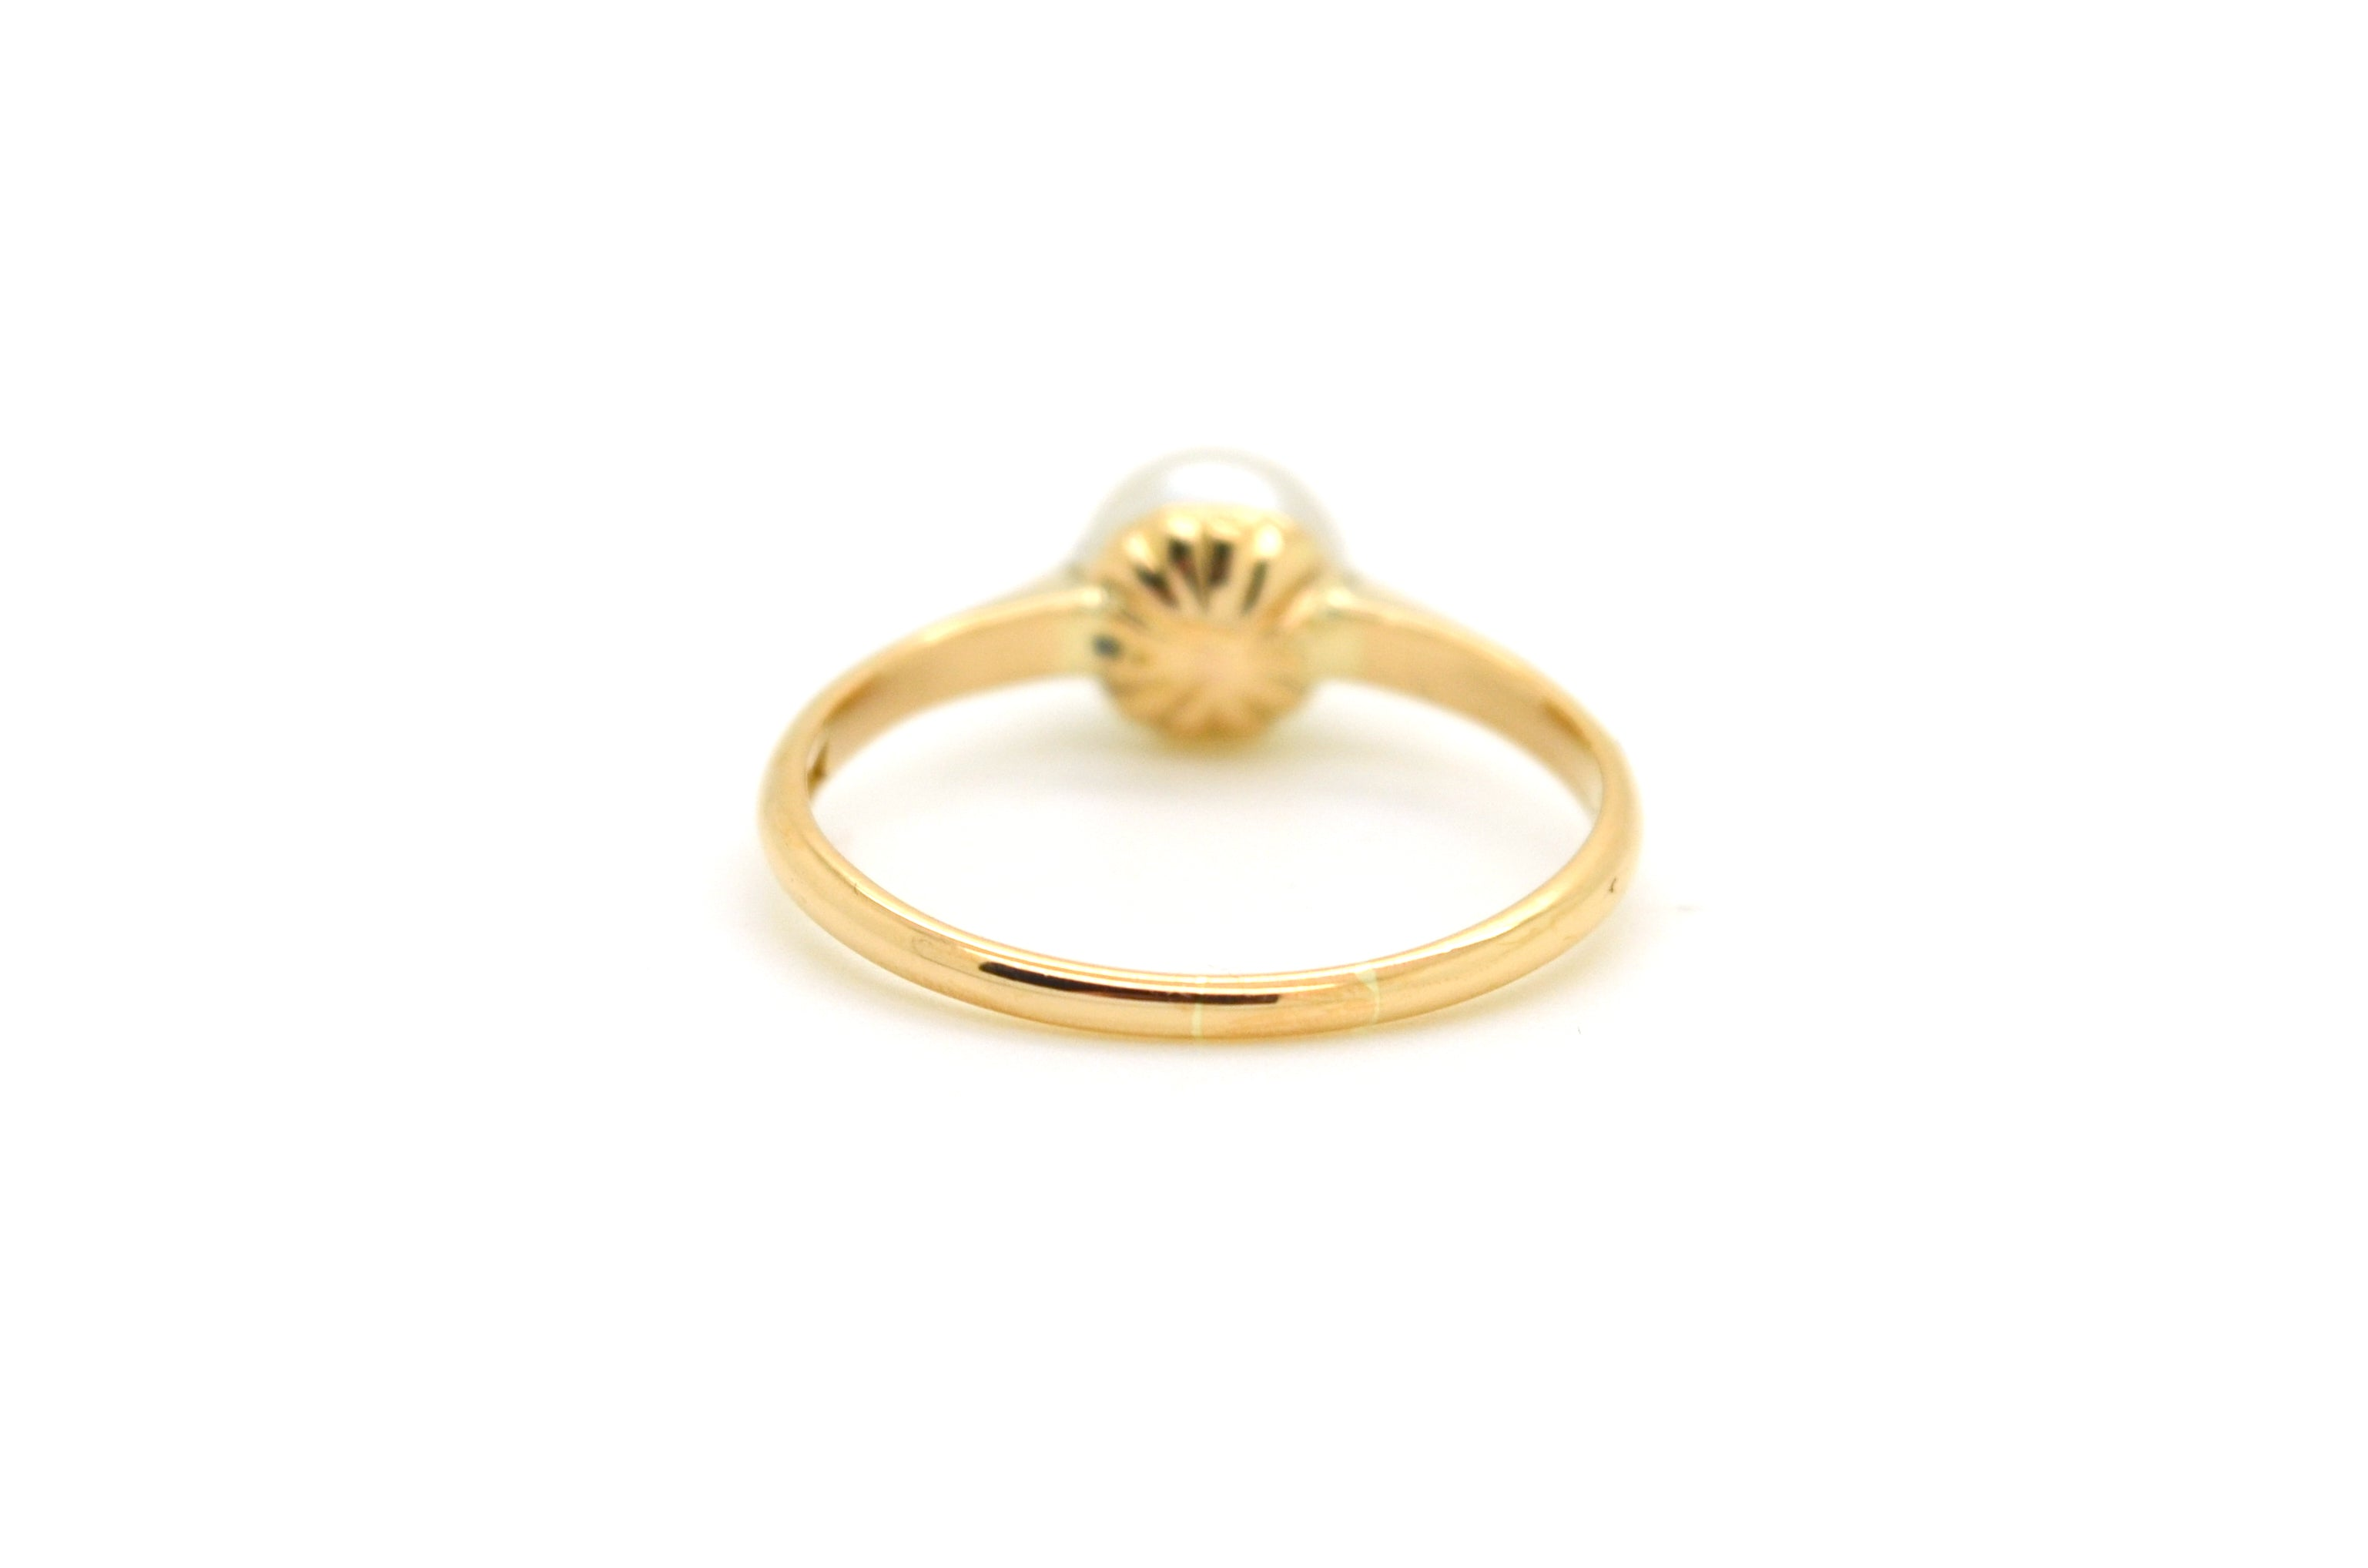 Vintage 18k Yellow Gold 6.5 mm Round White Pearl Solitaire Ring - Size 6